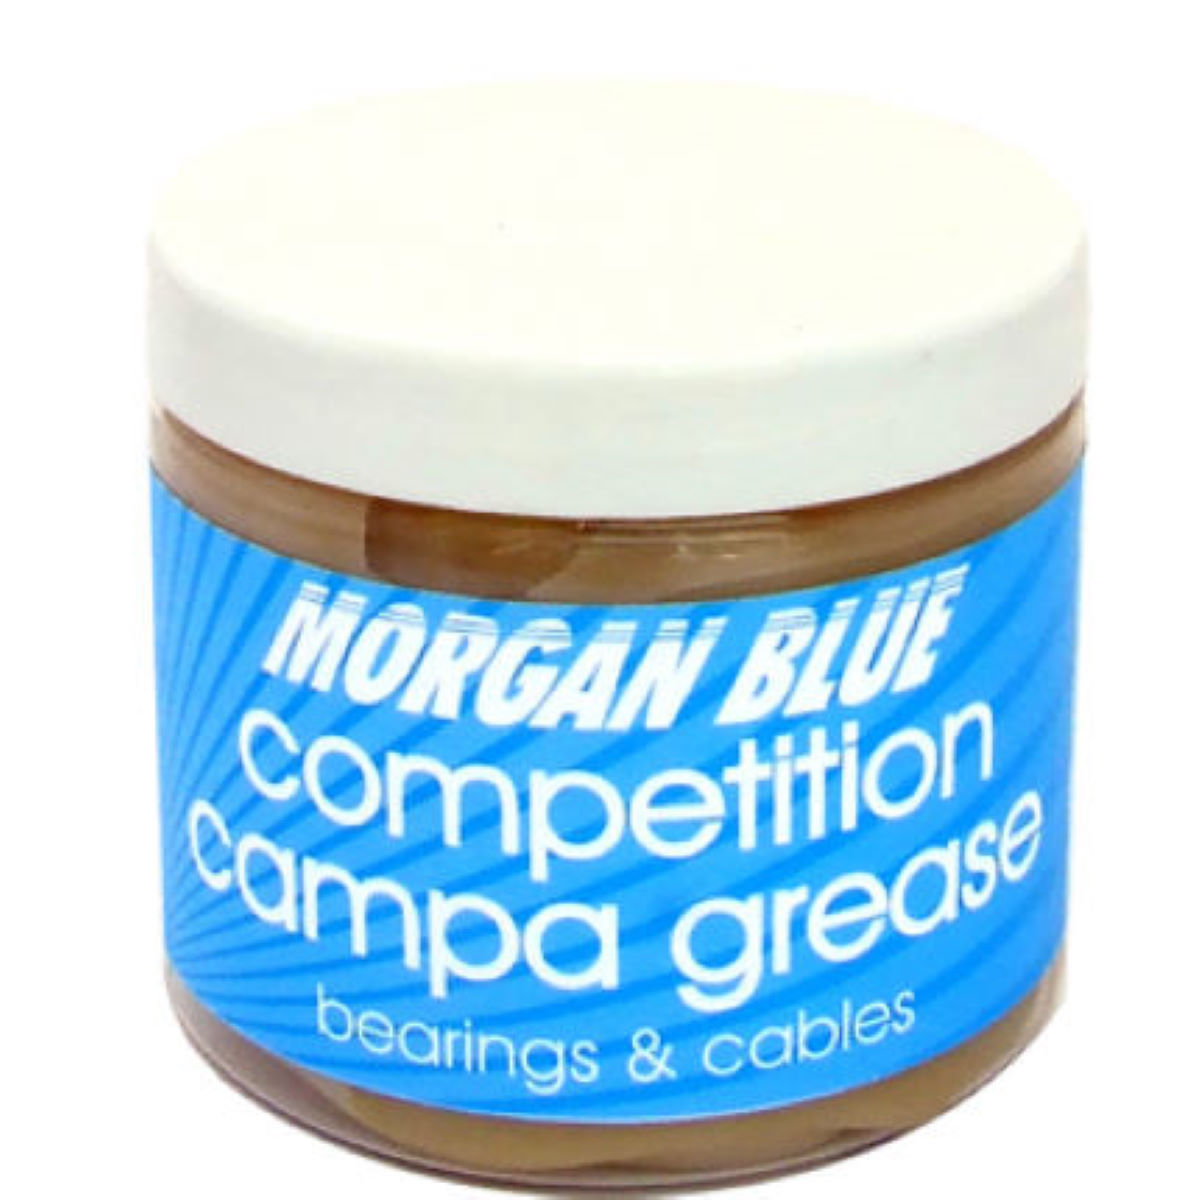 Graisse Morgan Blue Competition Campa (200 ml) - 200ml